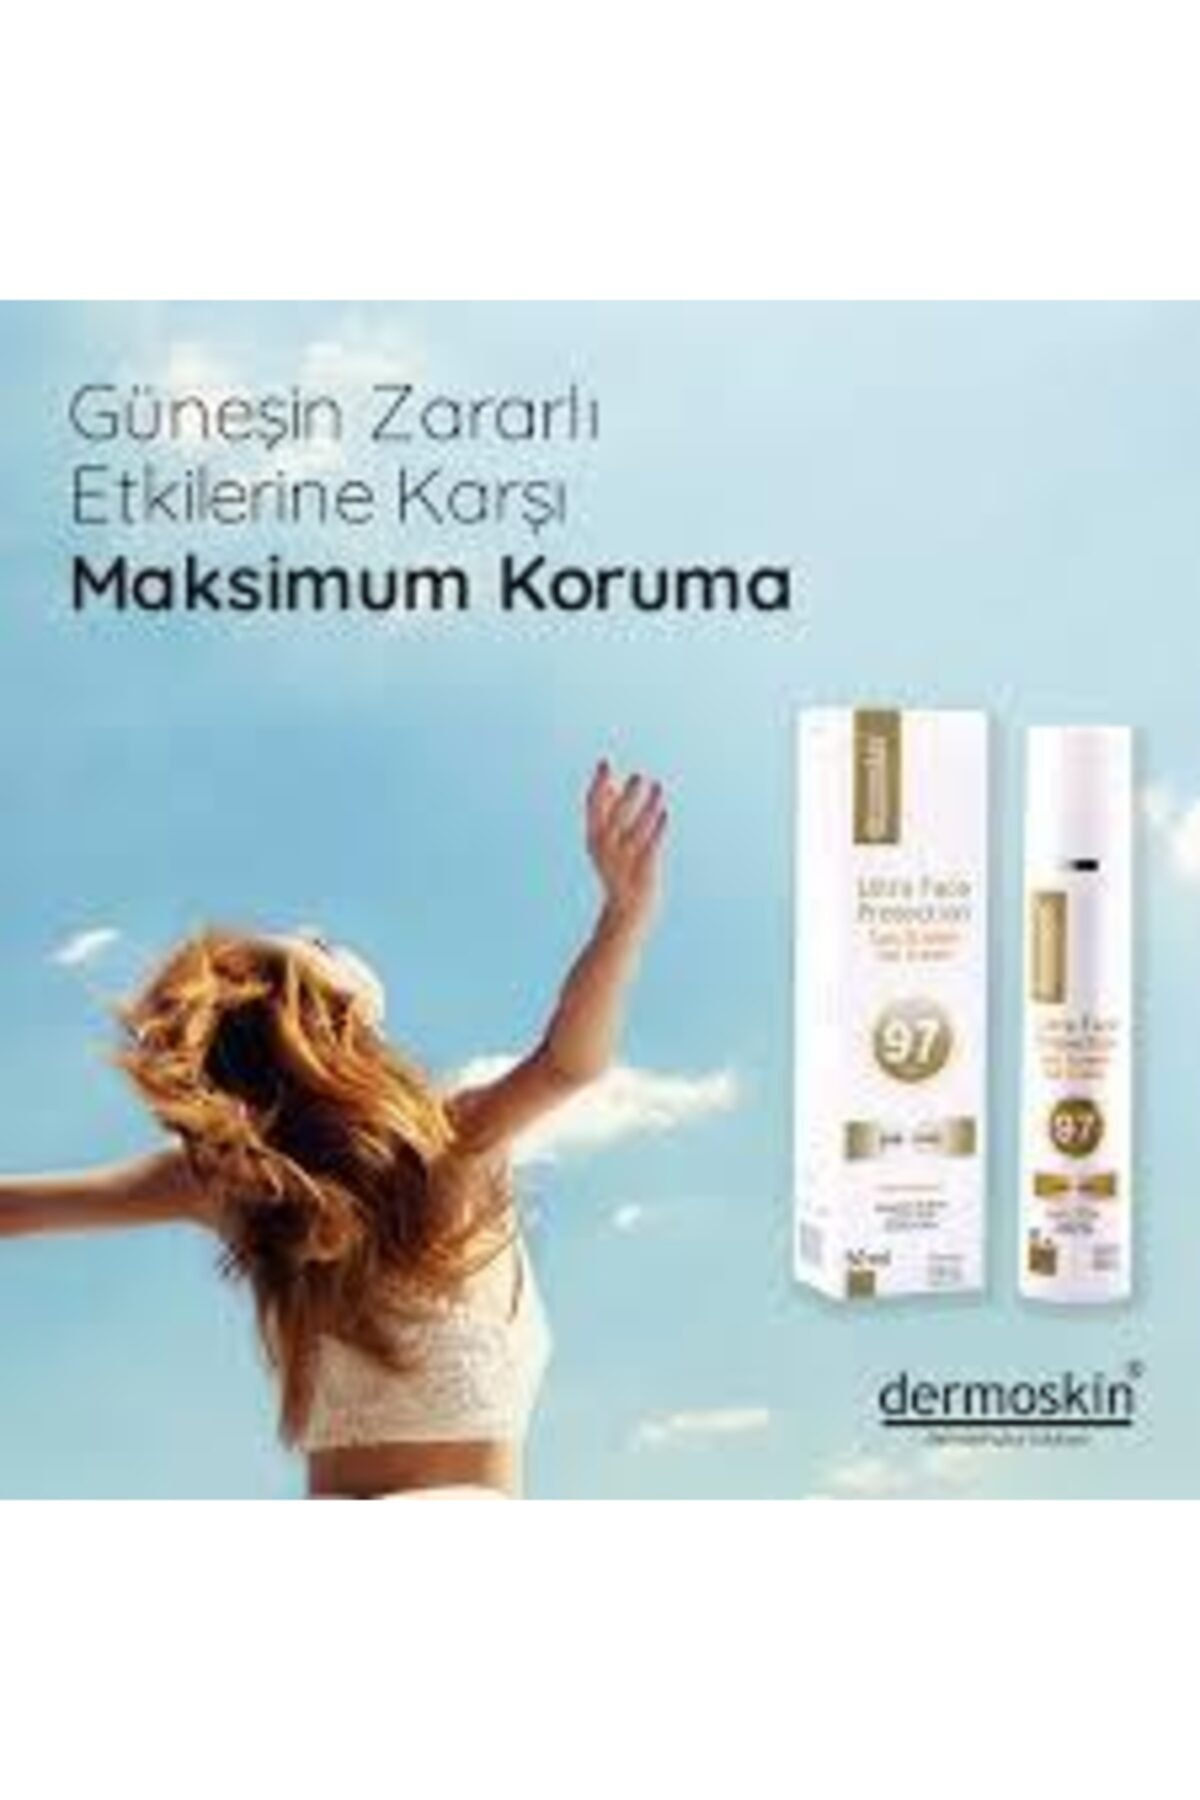 Dermoskin Ultra Face Protection Sun Screen Gel Cream Spf97 50 Ml 2